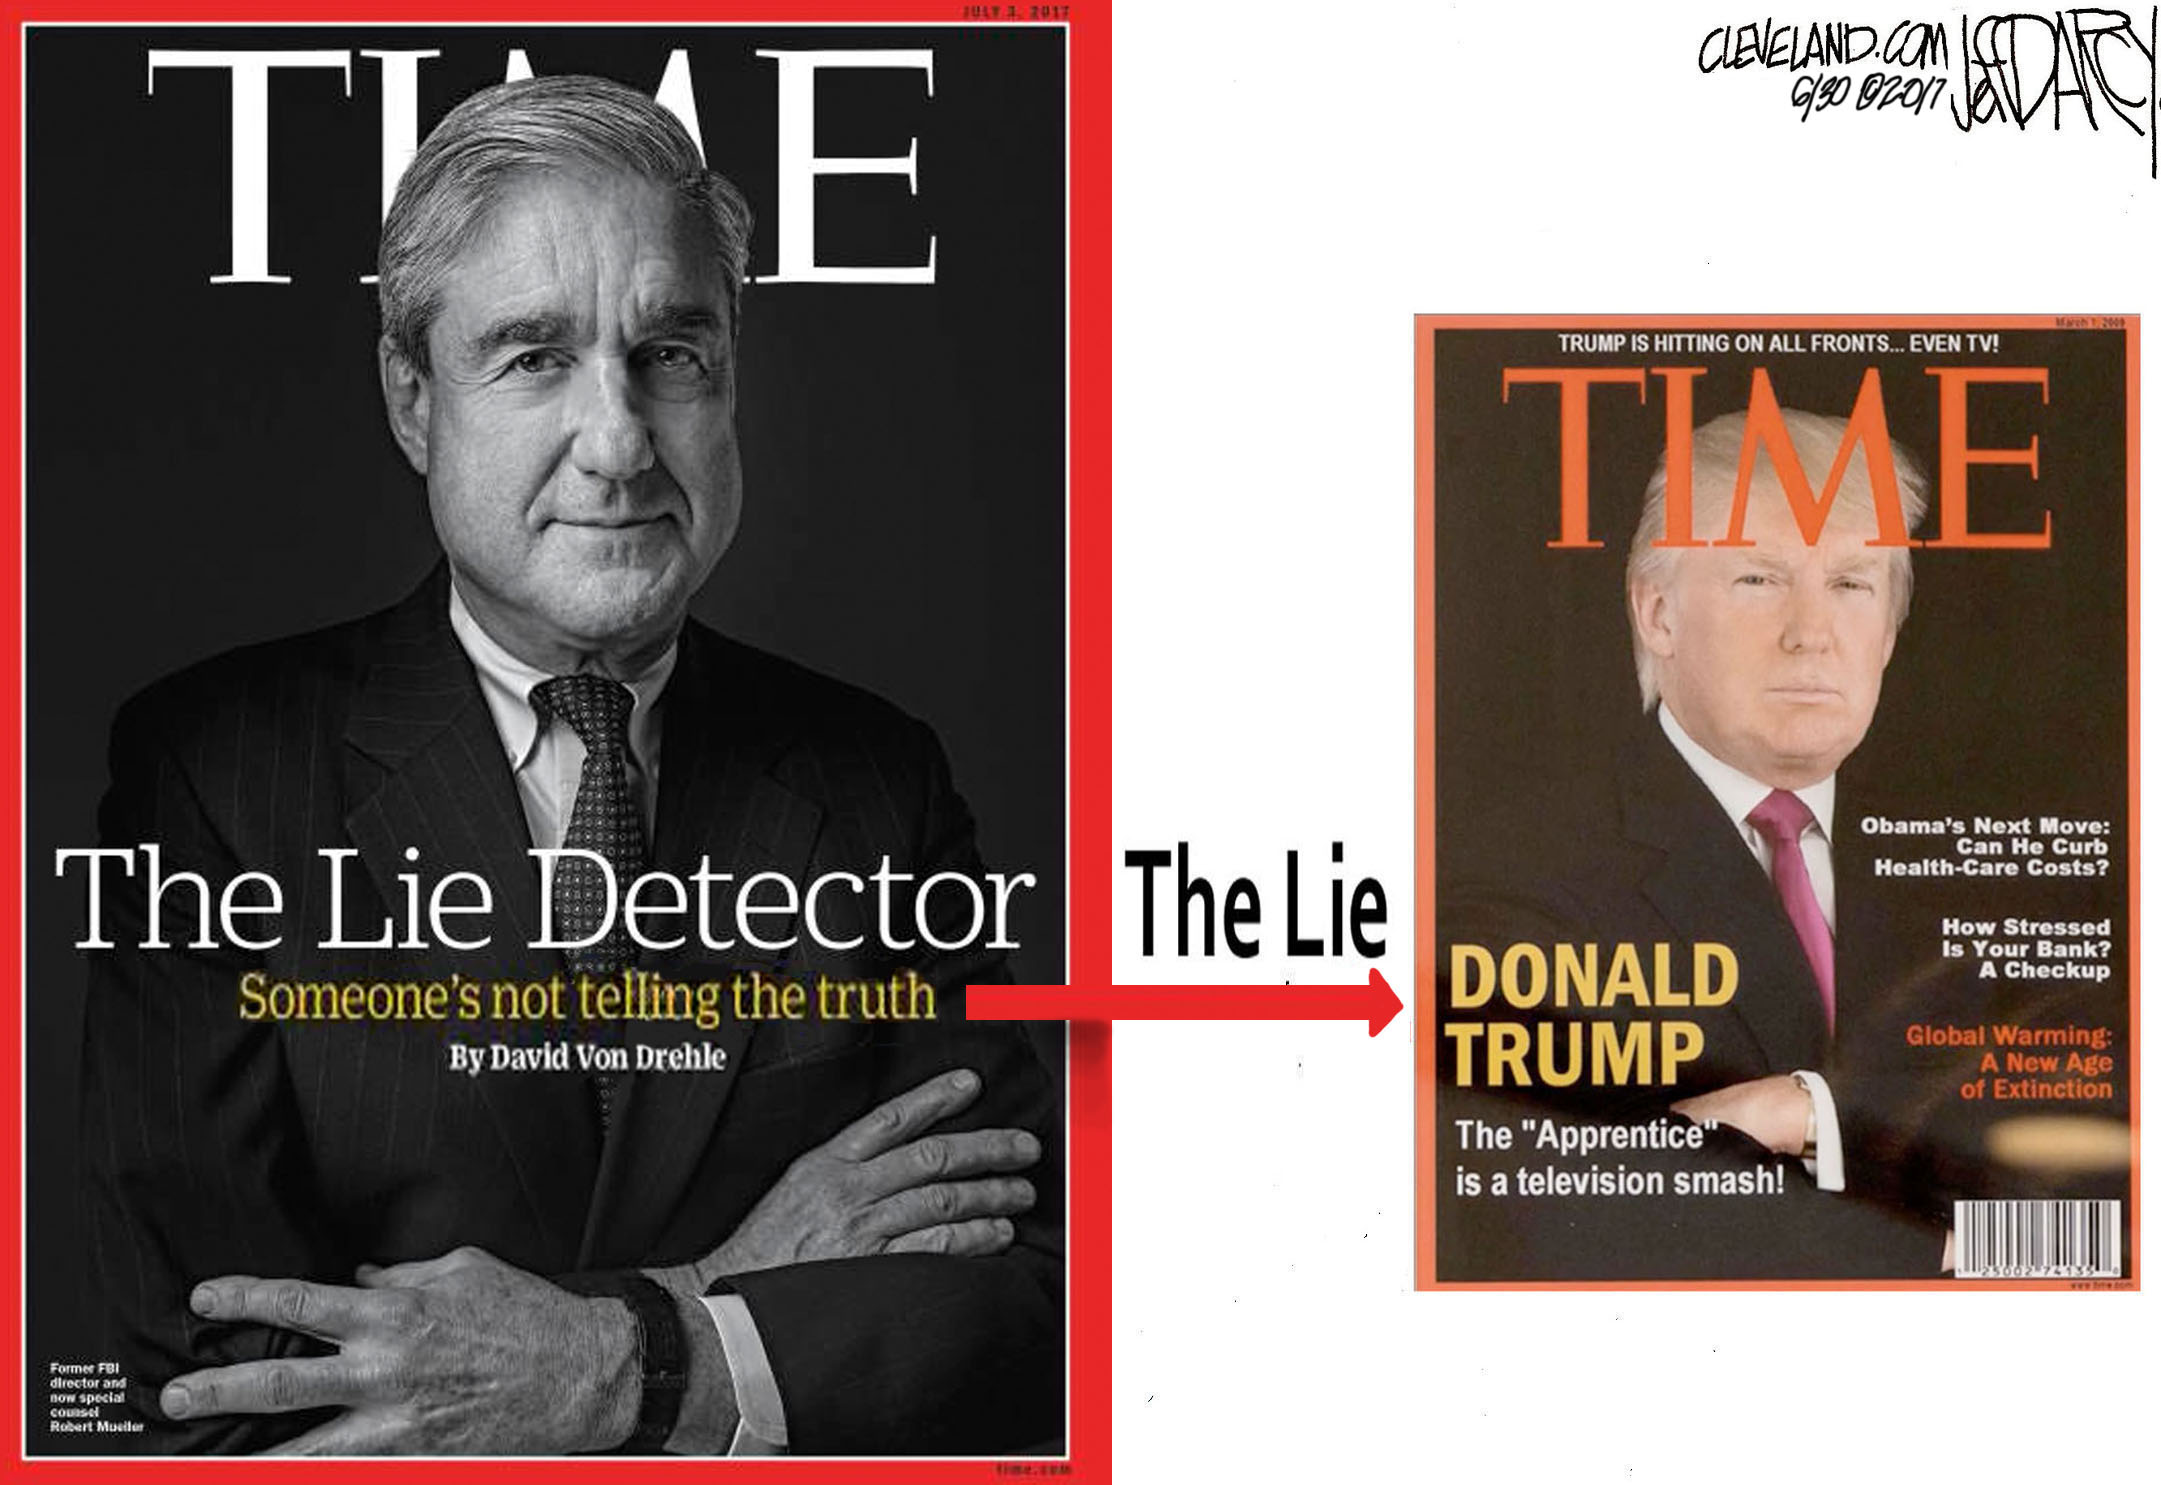 The Washington Post reported that Trump's golf clubs have been decorated with a fake Time magazine cover featuring him